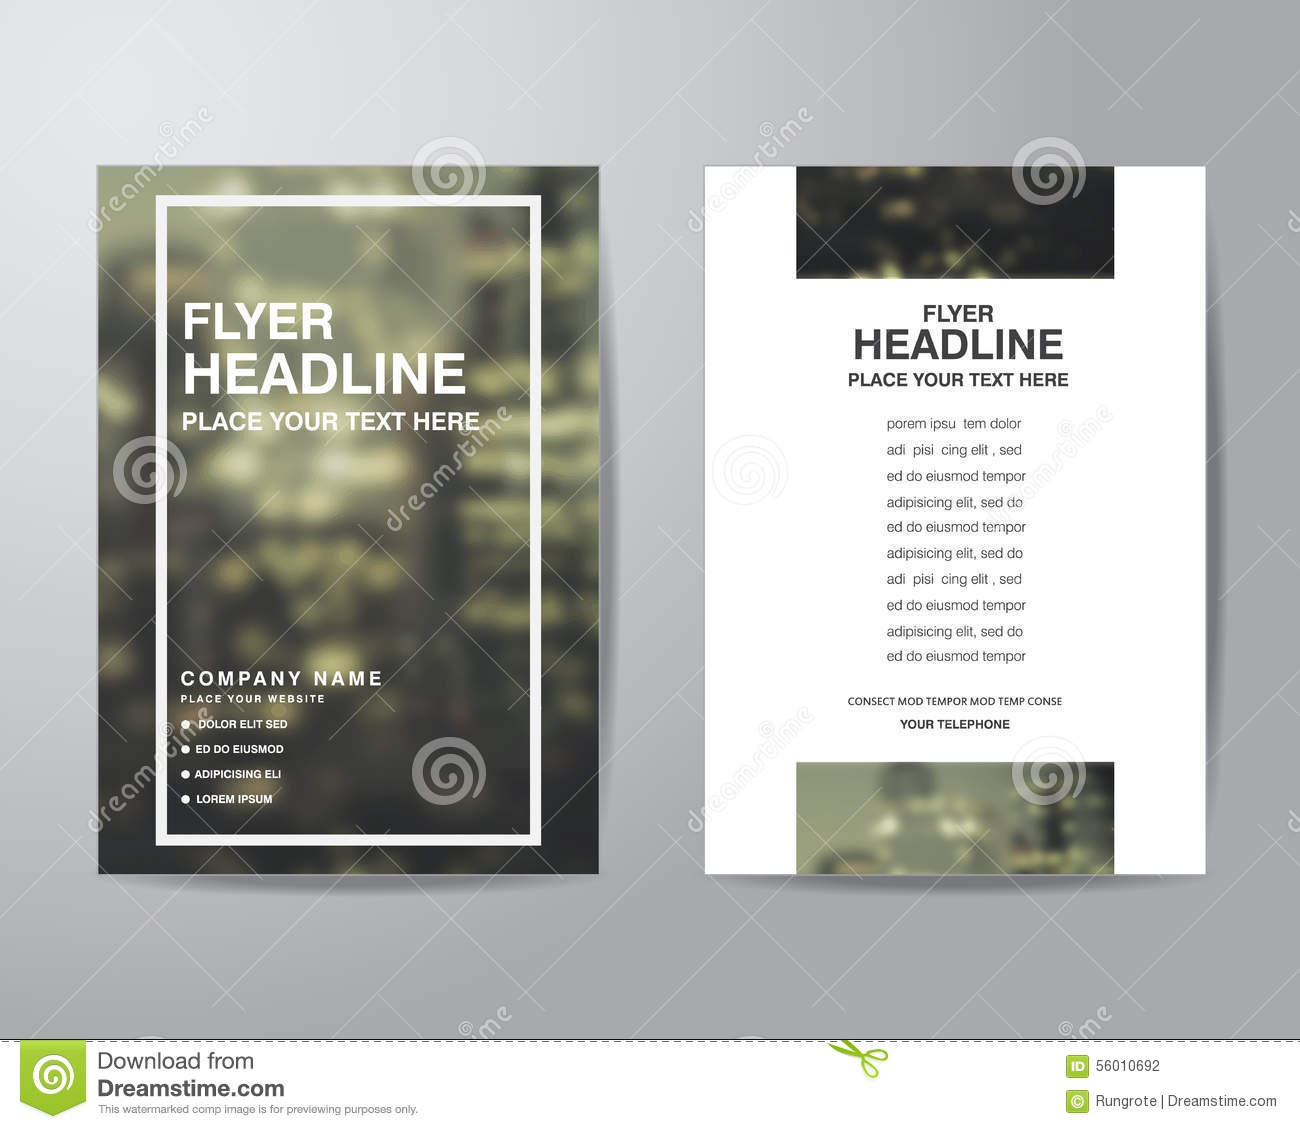 Business Leadership Conference Brochure Template Design Auto York Wiring Schematics Model E1rc036s06d Flyers Layout Free Cover Page Vectors Photos And